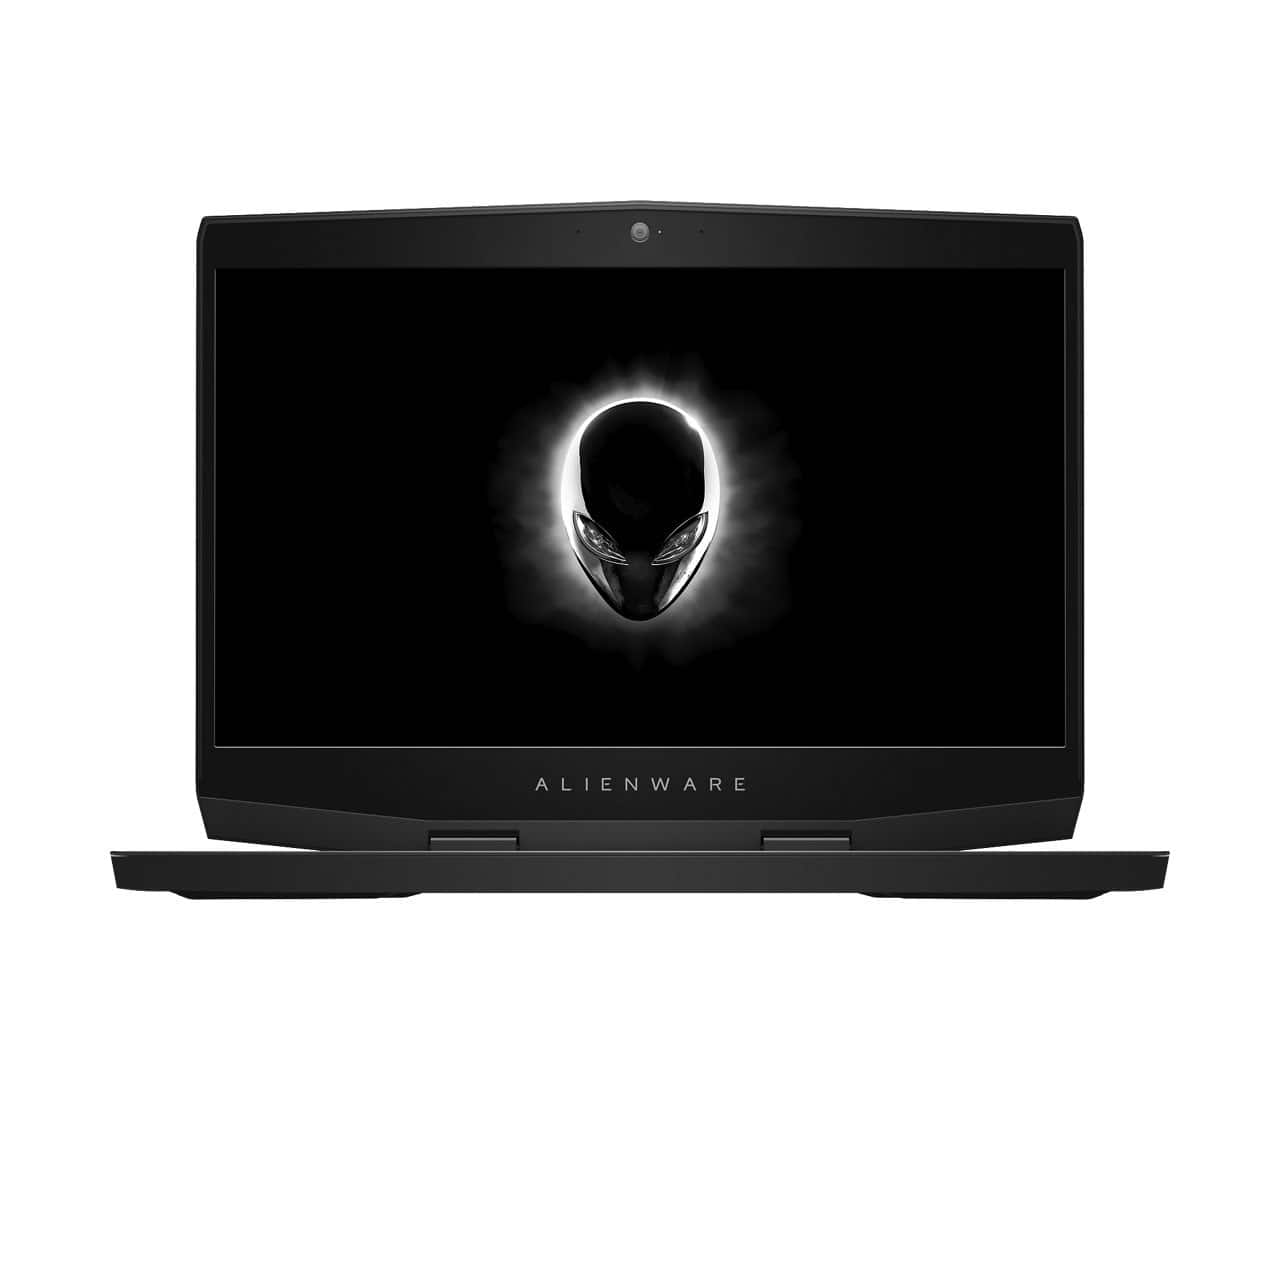 "Alienware m15 gaming laptop 15.6"" intel i7-8750h nvidia gtx 1060 256gb ssd + 1tb hdd 16gb ram $1210"